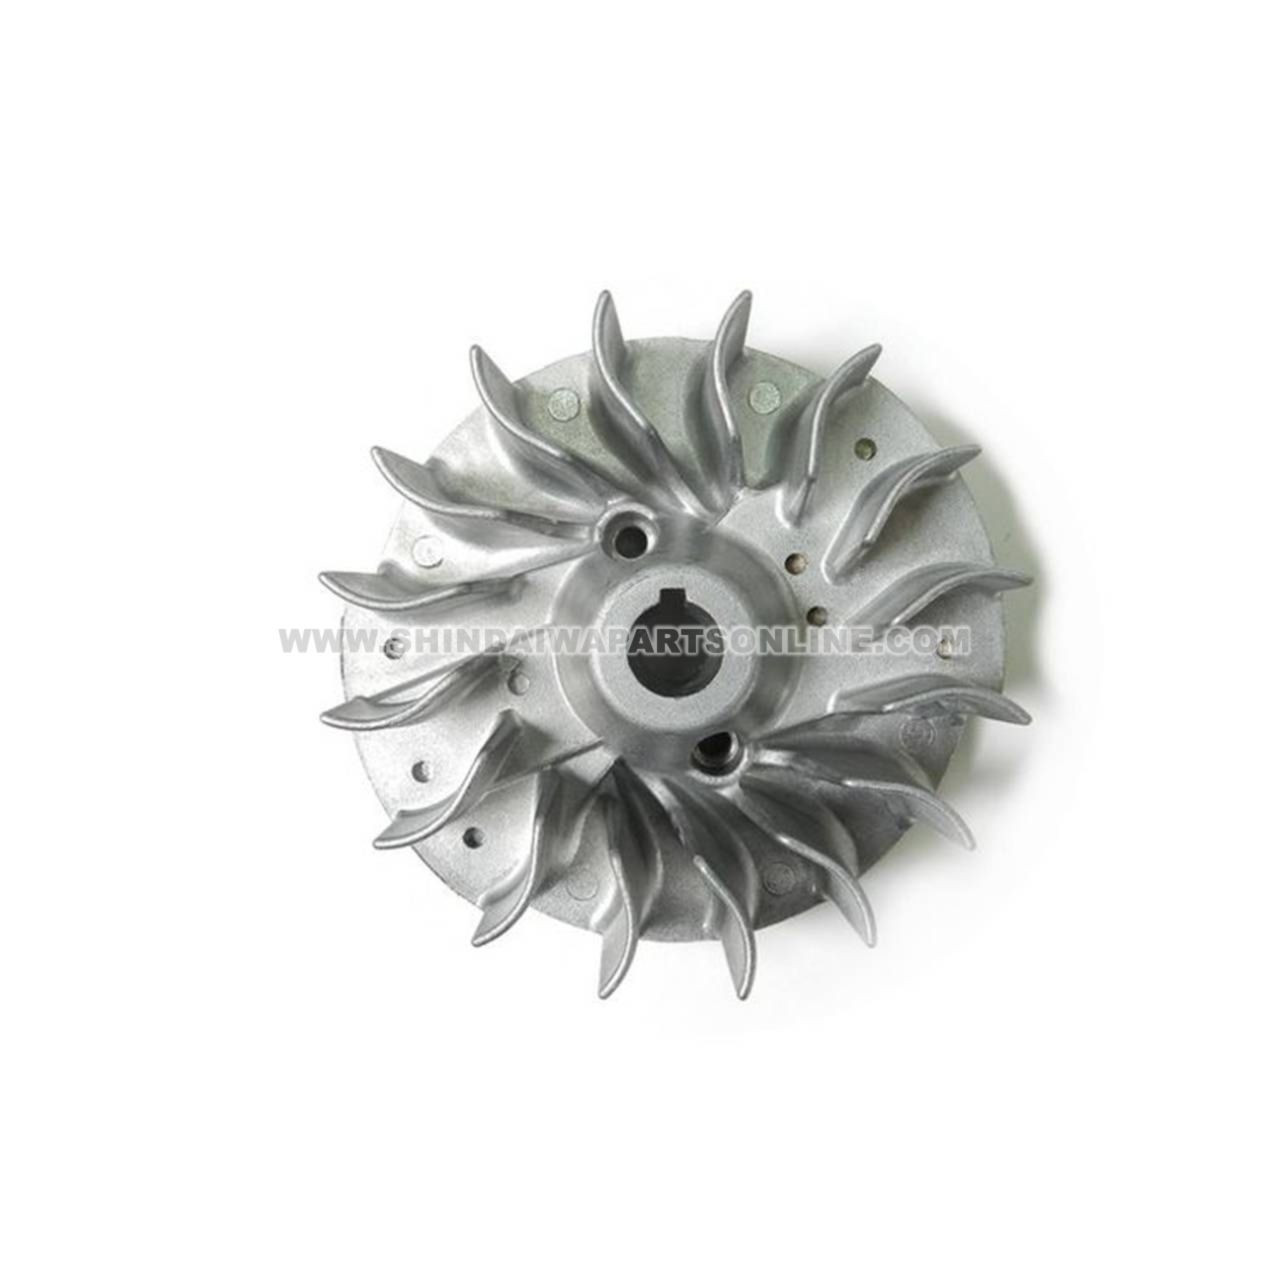 Shindaiwa A409000630 - Flywheel Magnetic img2